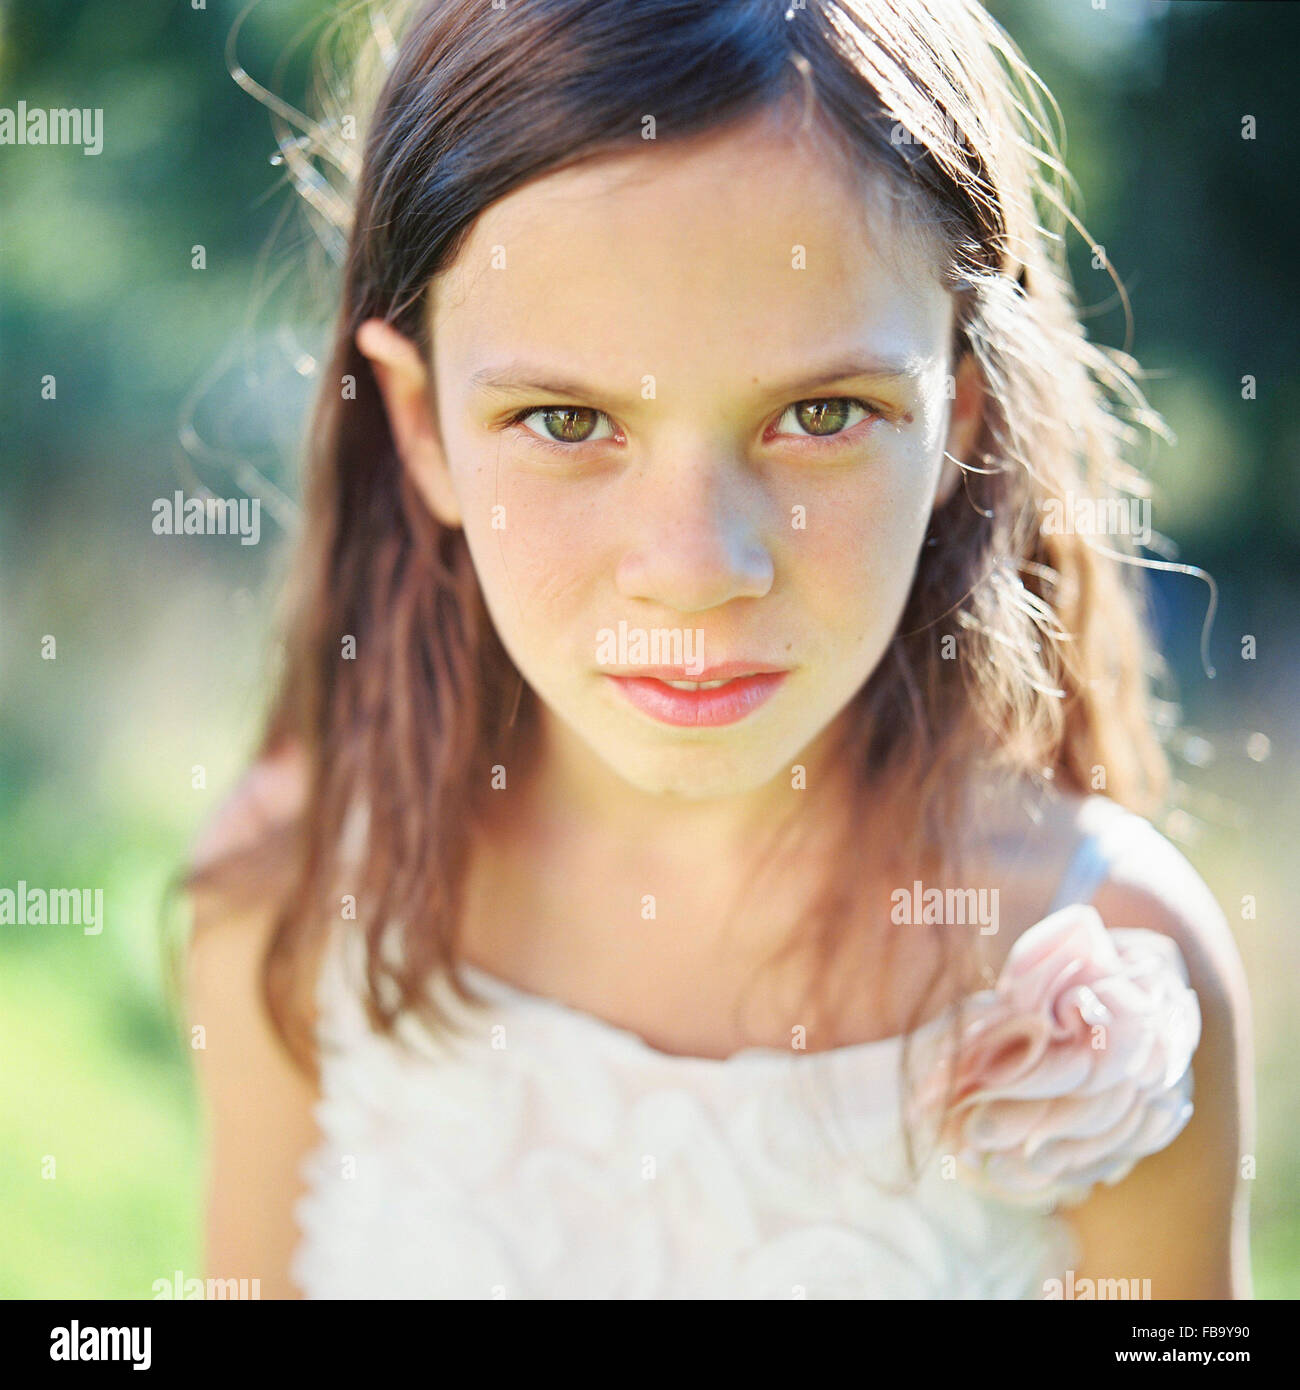 Sweden, Vastmanland, Girl (6-7) looking at camera - Stock Image